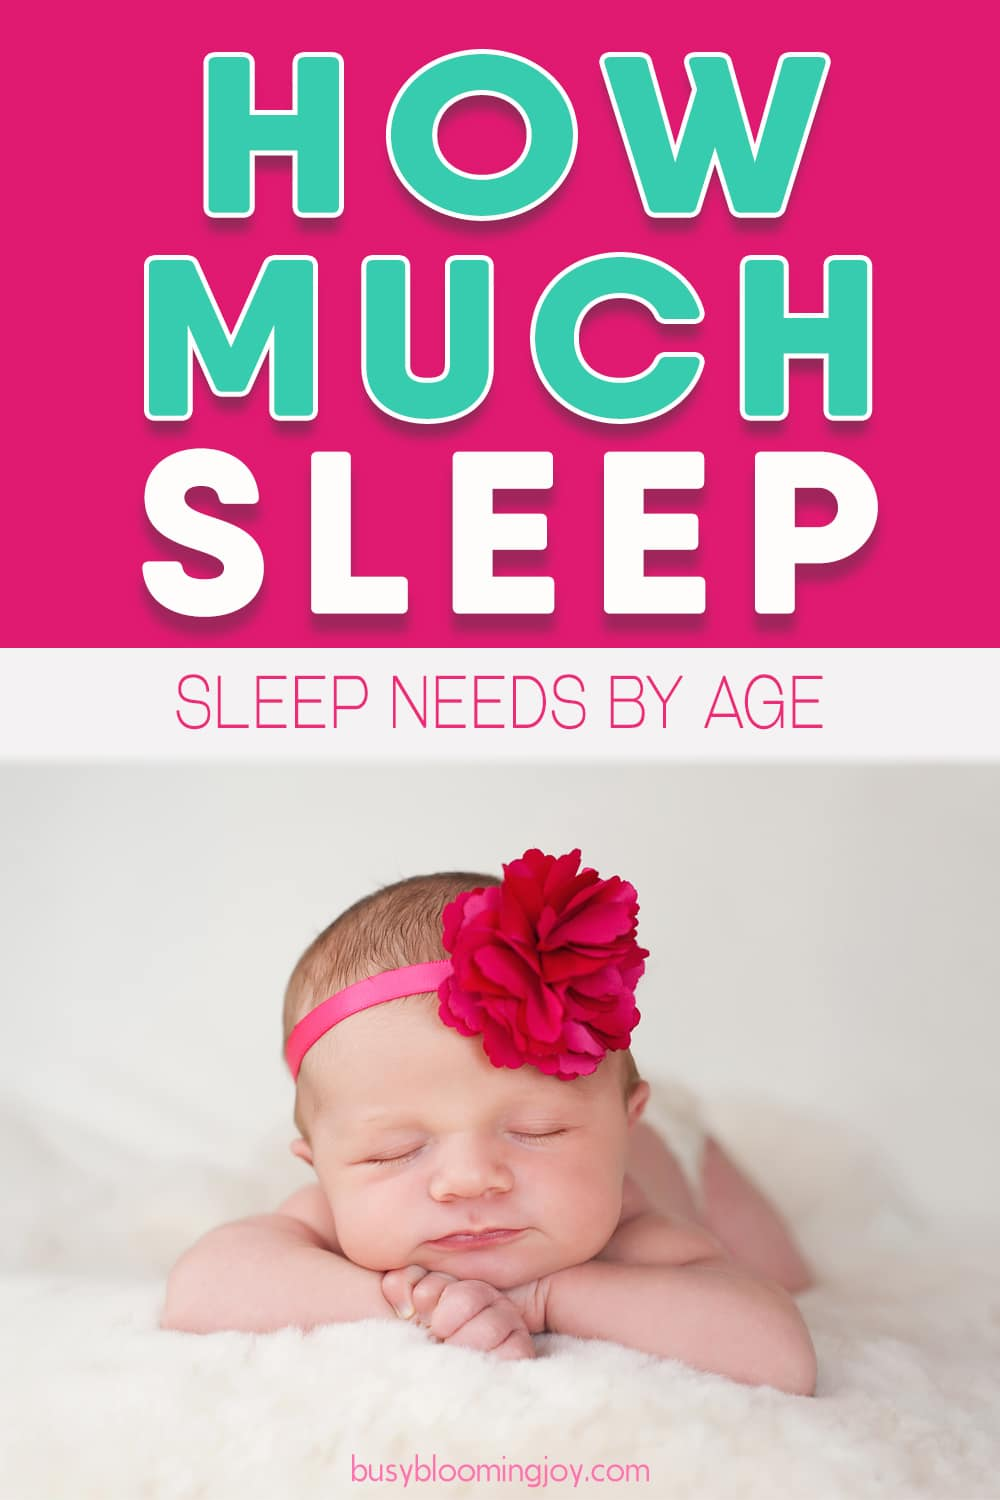 Baffled by how much sleep baby needs? Baby sleep chart to the rescue!